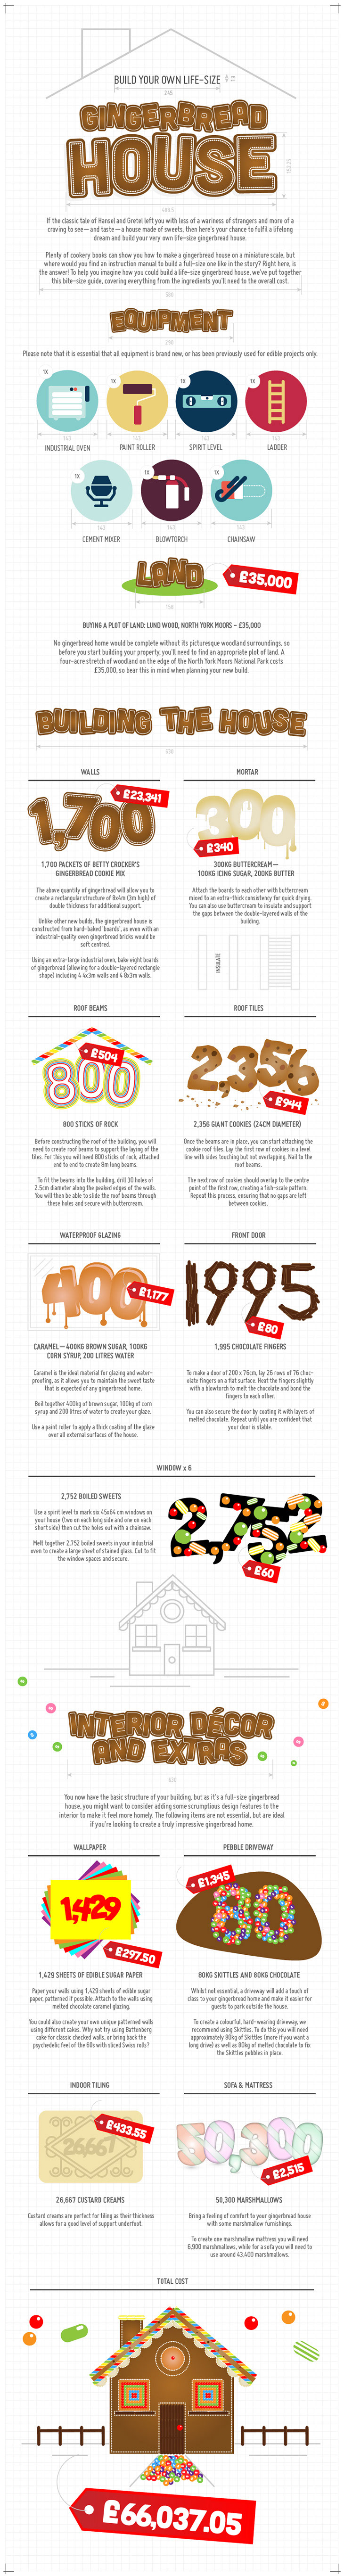 Gingerbread House Guide-Infographic